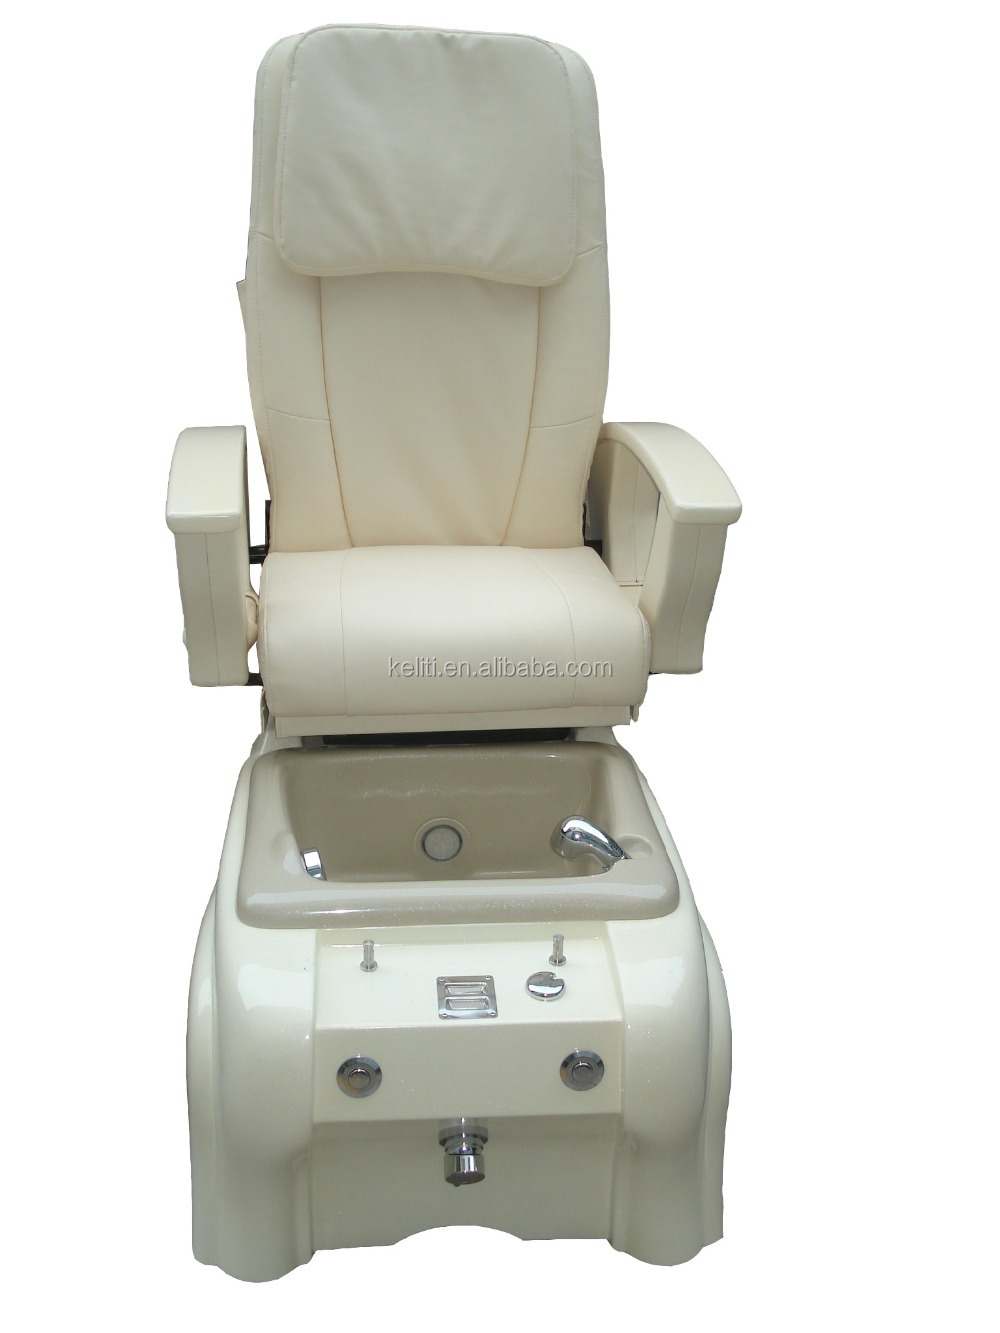 ... Massage Pedicure Chair Similar To T4 Style. 1600# 2300# ...